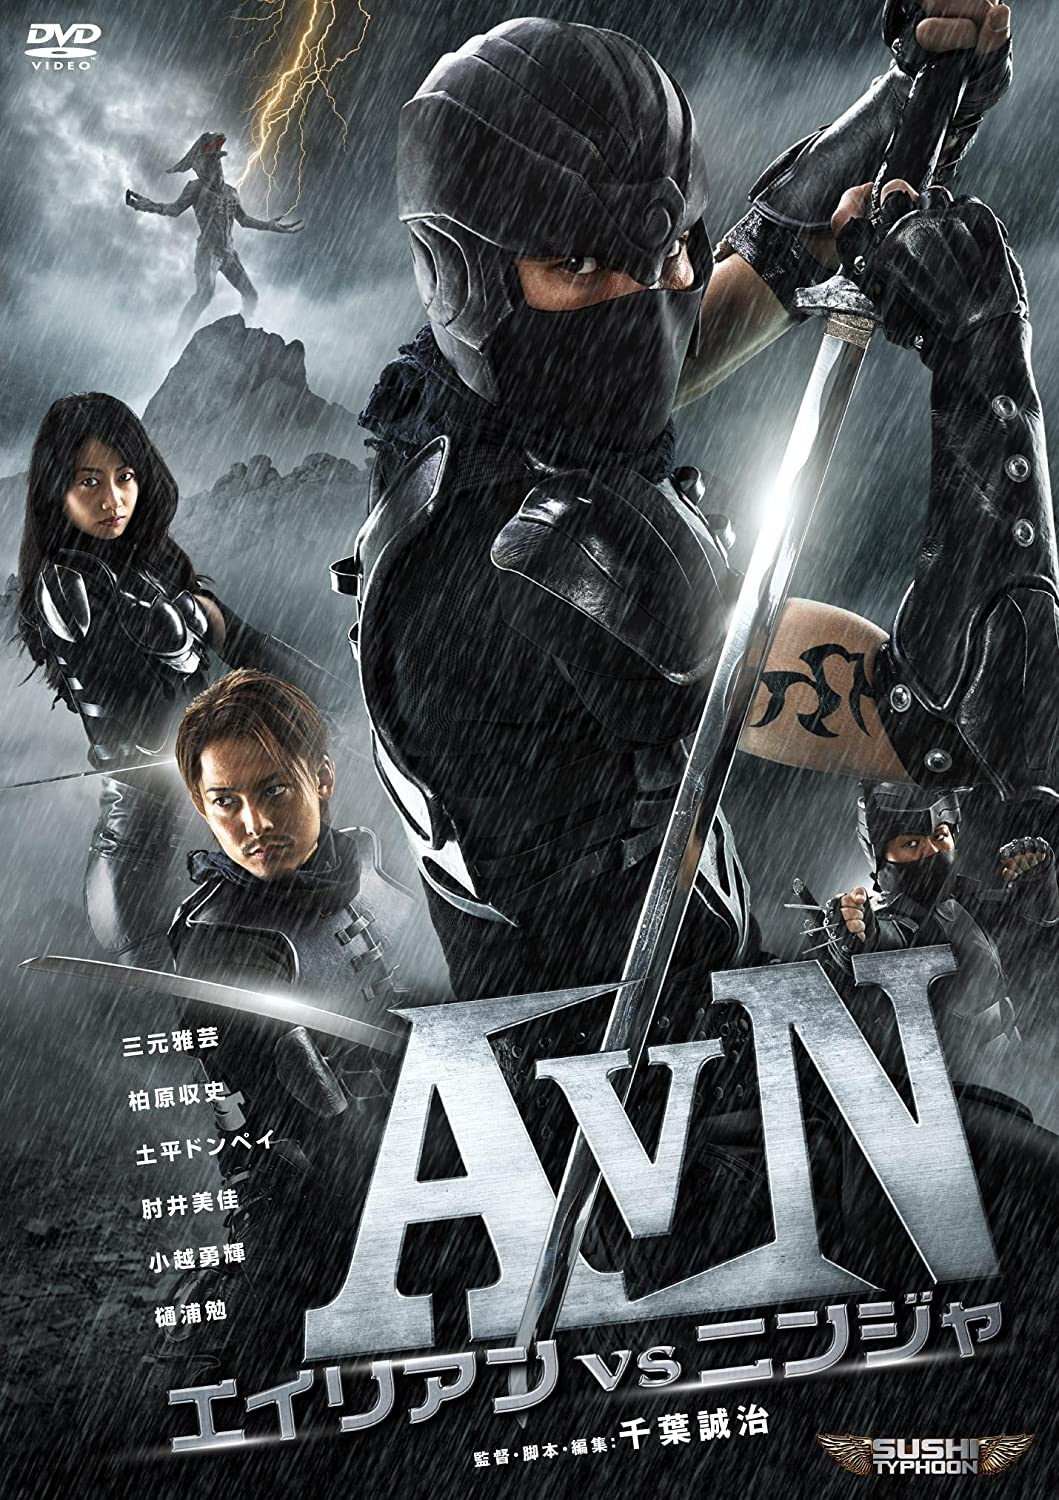 Avn/Alien Vs Ninja [DVD de Audio]: Amazon.es: Cine y Series TV